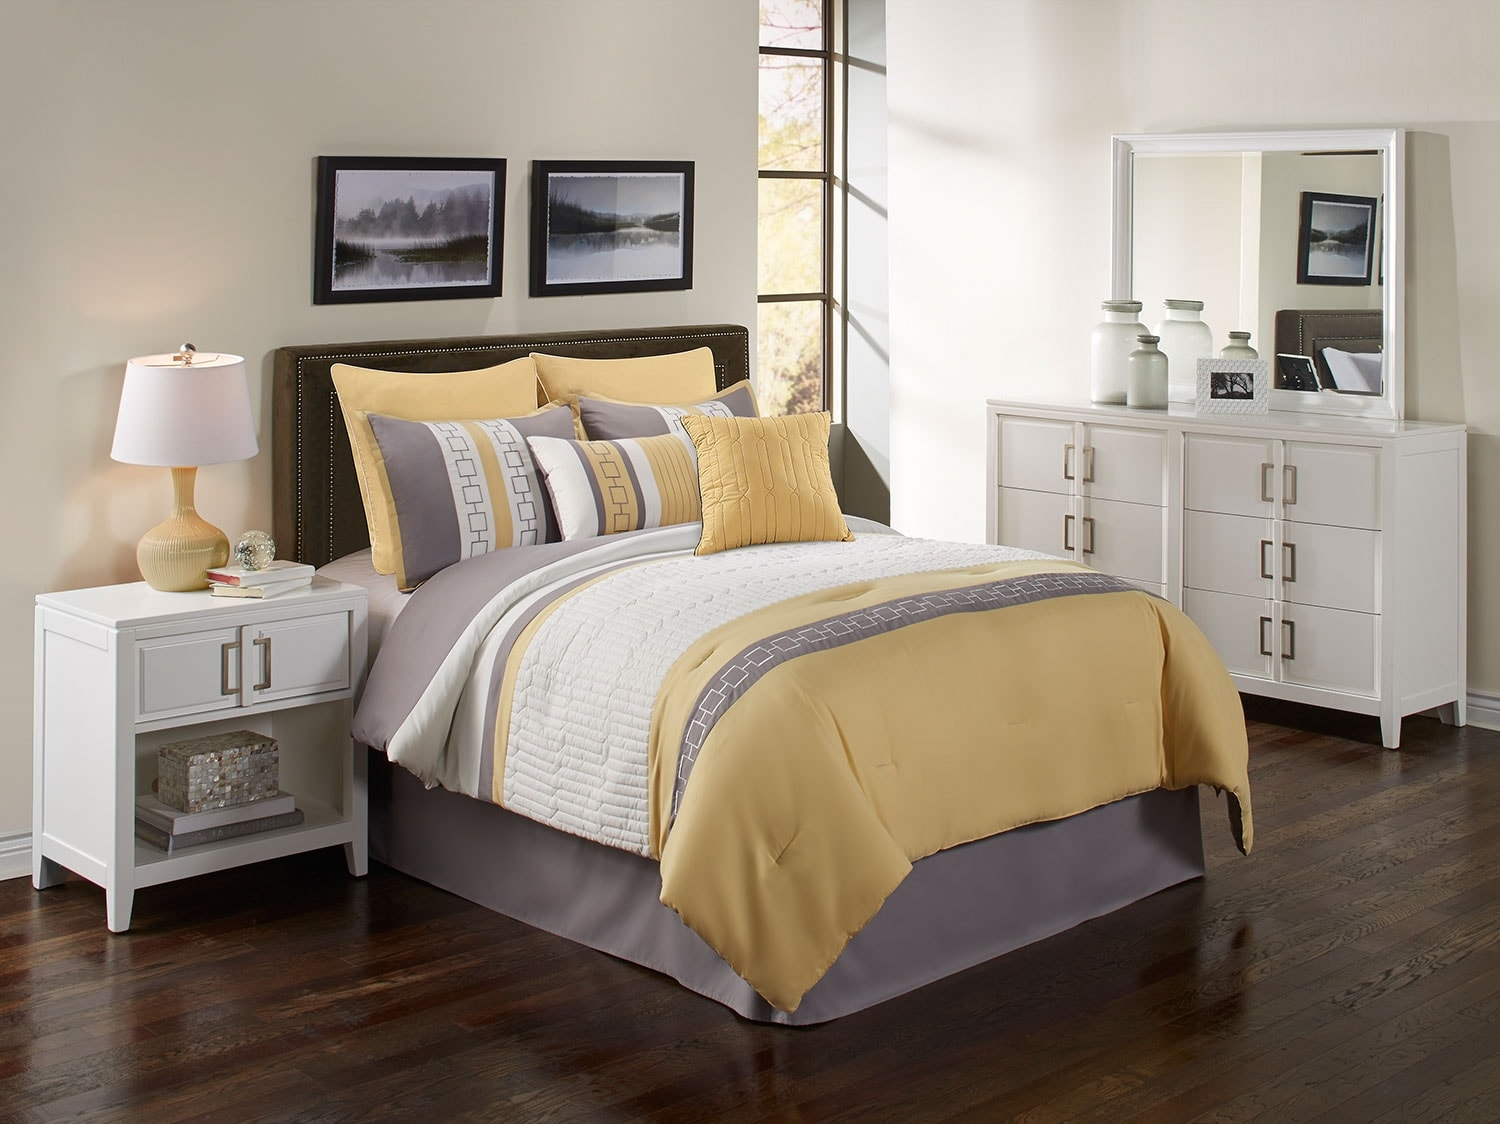 Mattresses and Bedding - Hudson 8-Piece Queen Comforter Set